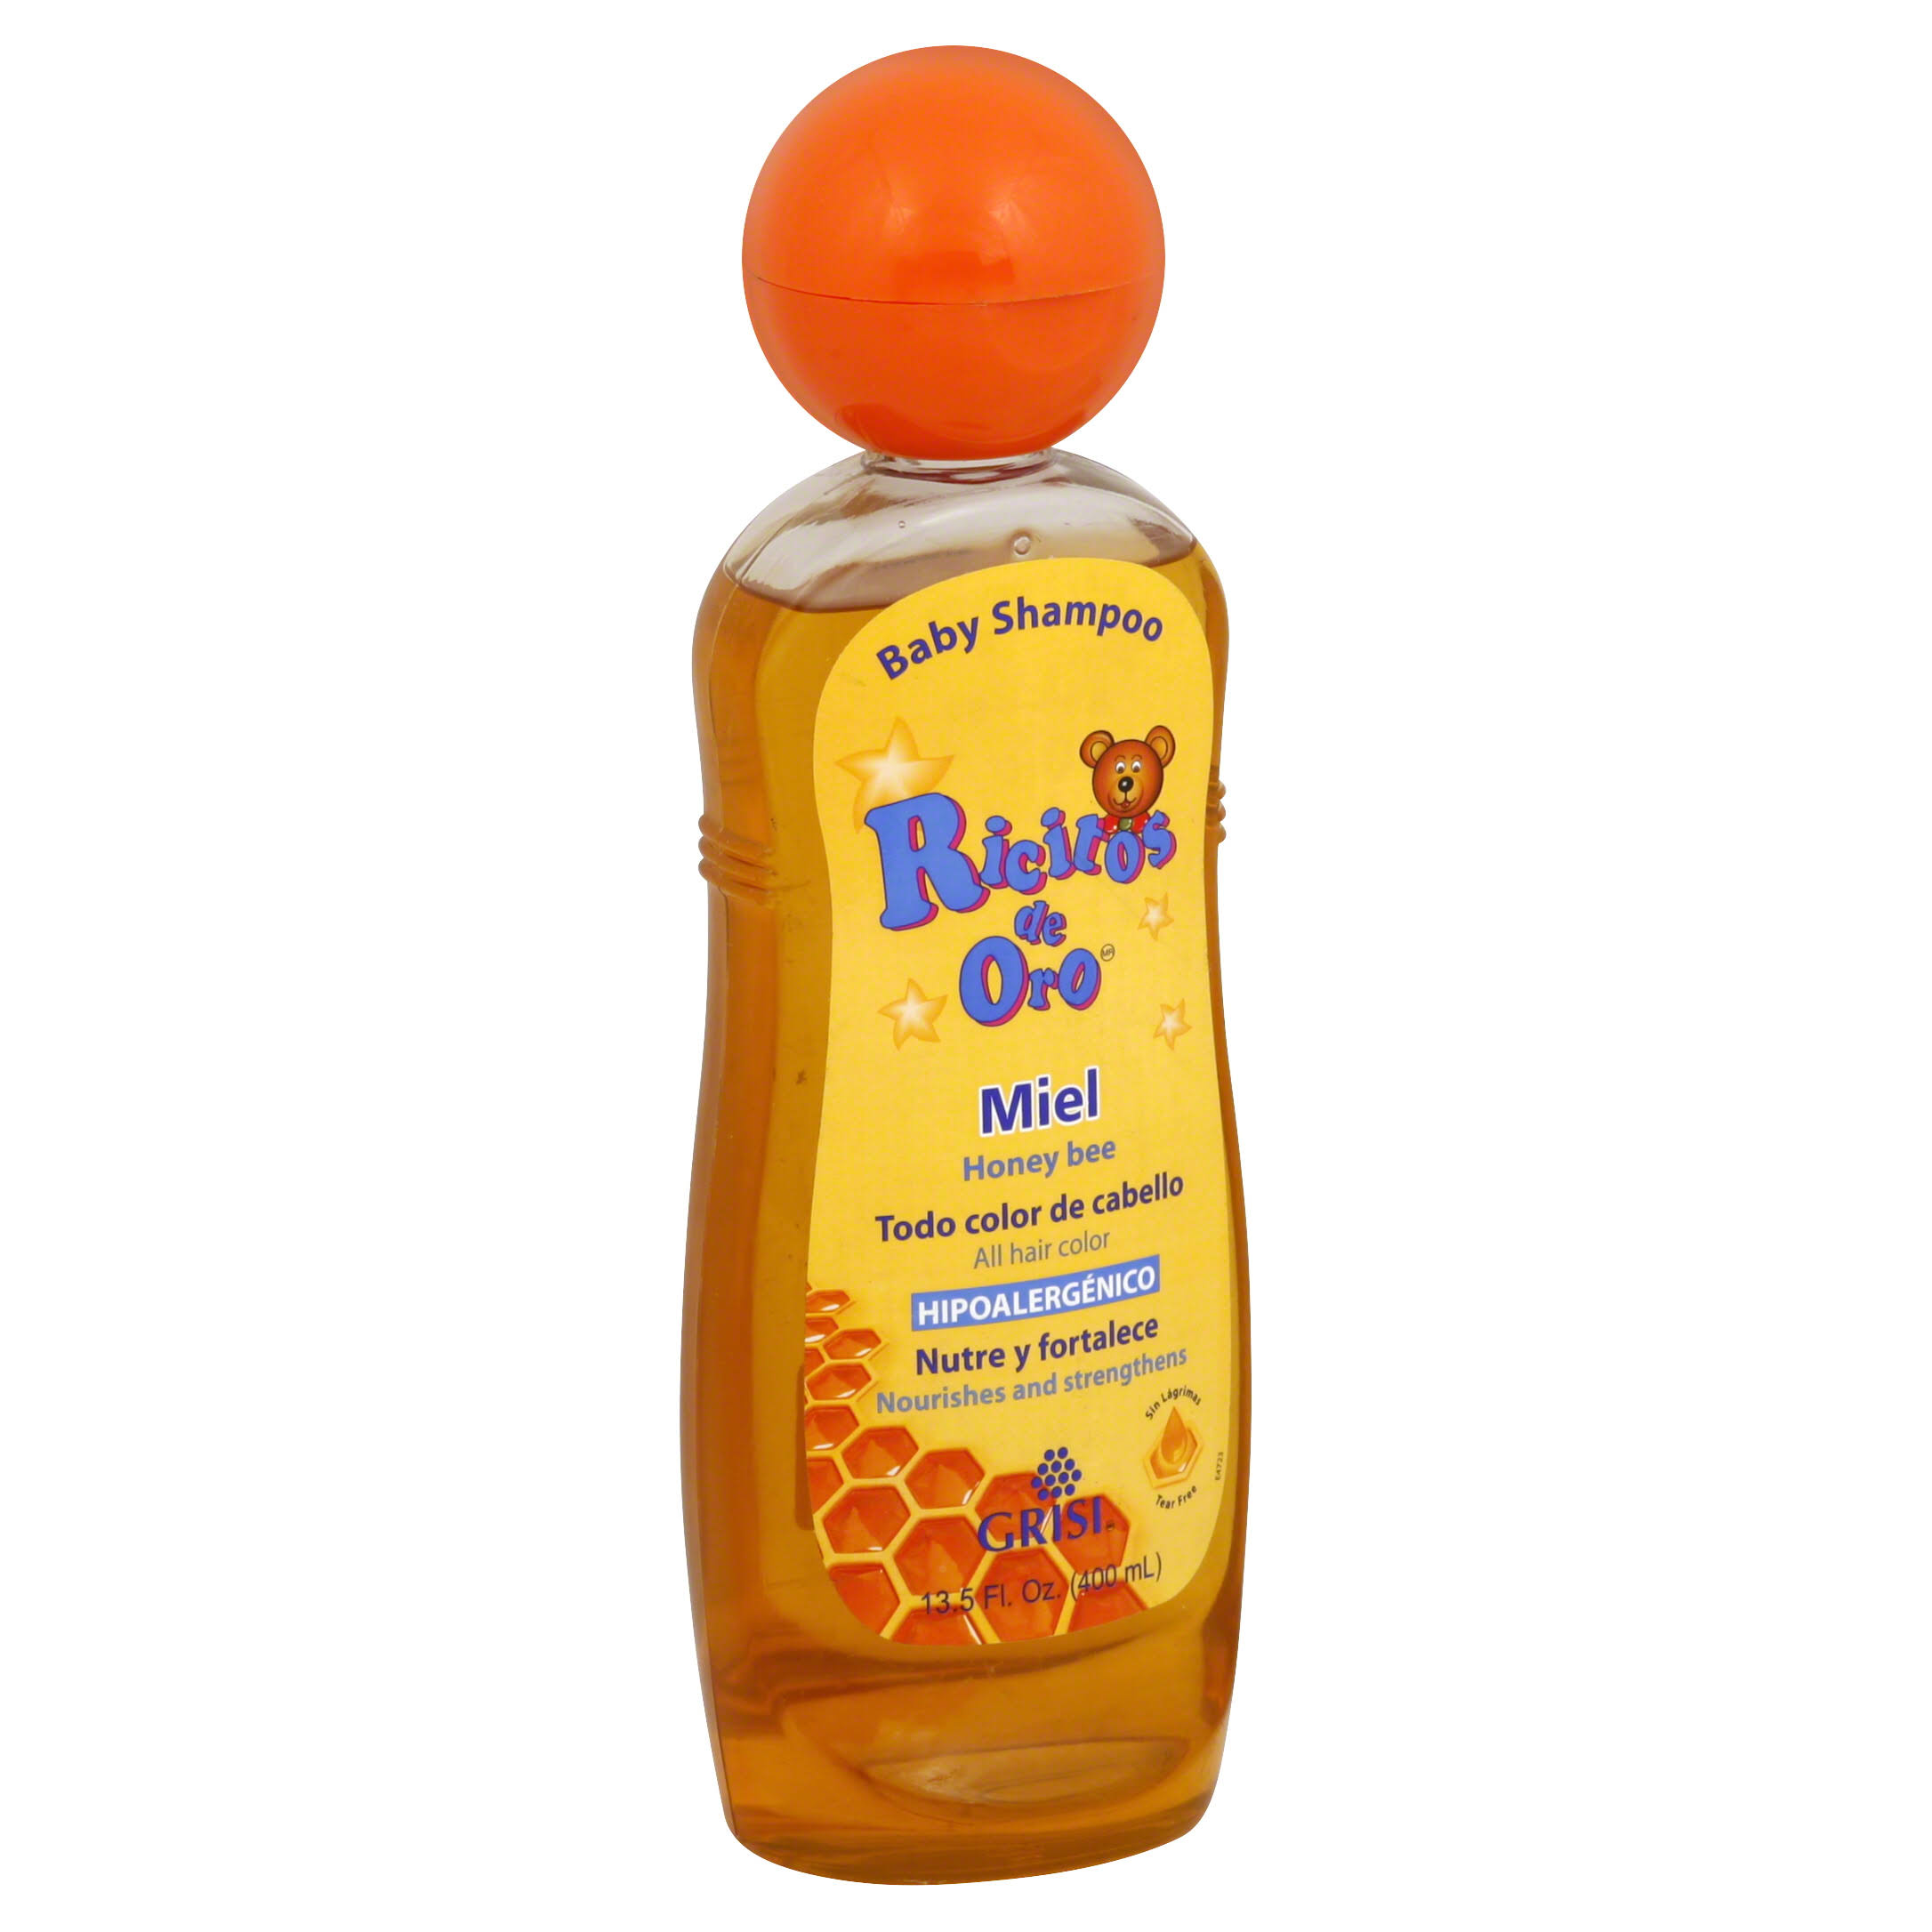 Ricitos De Oro Baby Shampoo - Hypoallergenic, Honey, 400ml